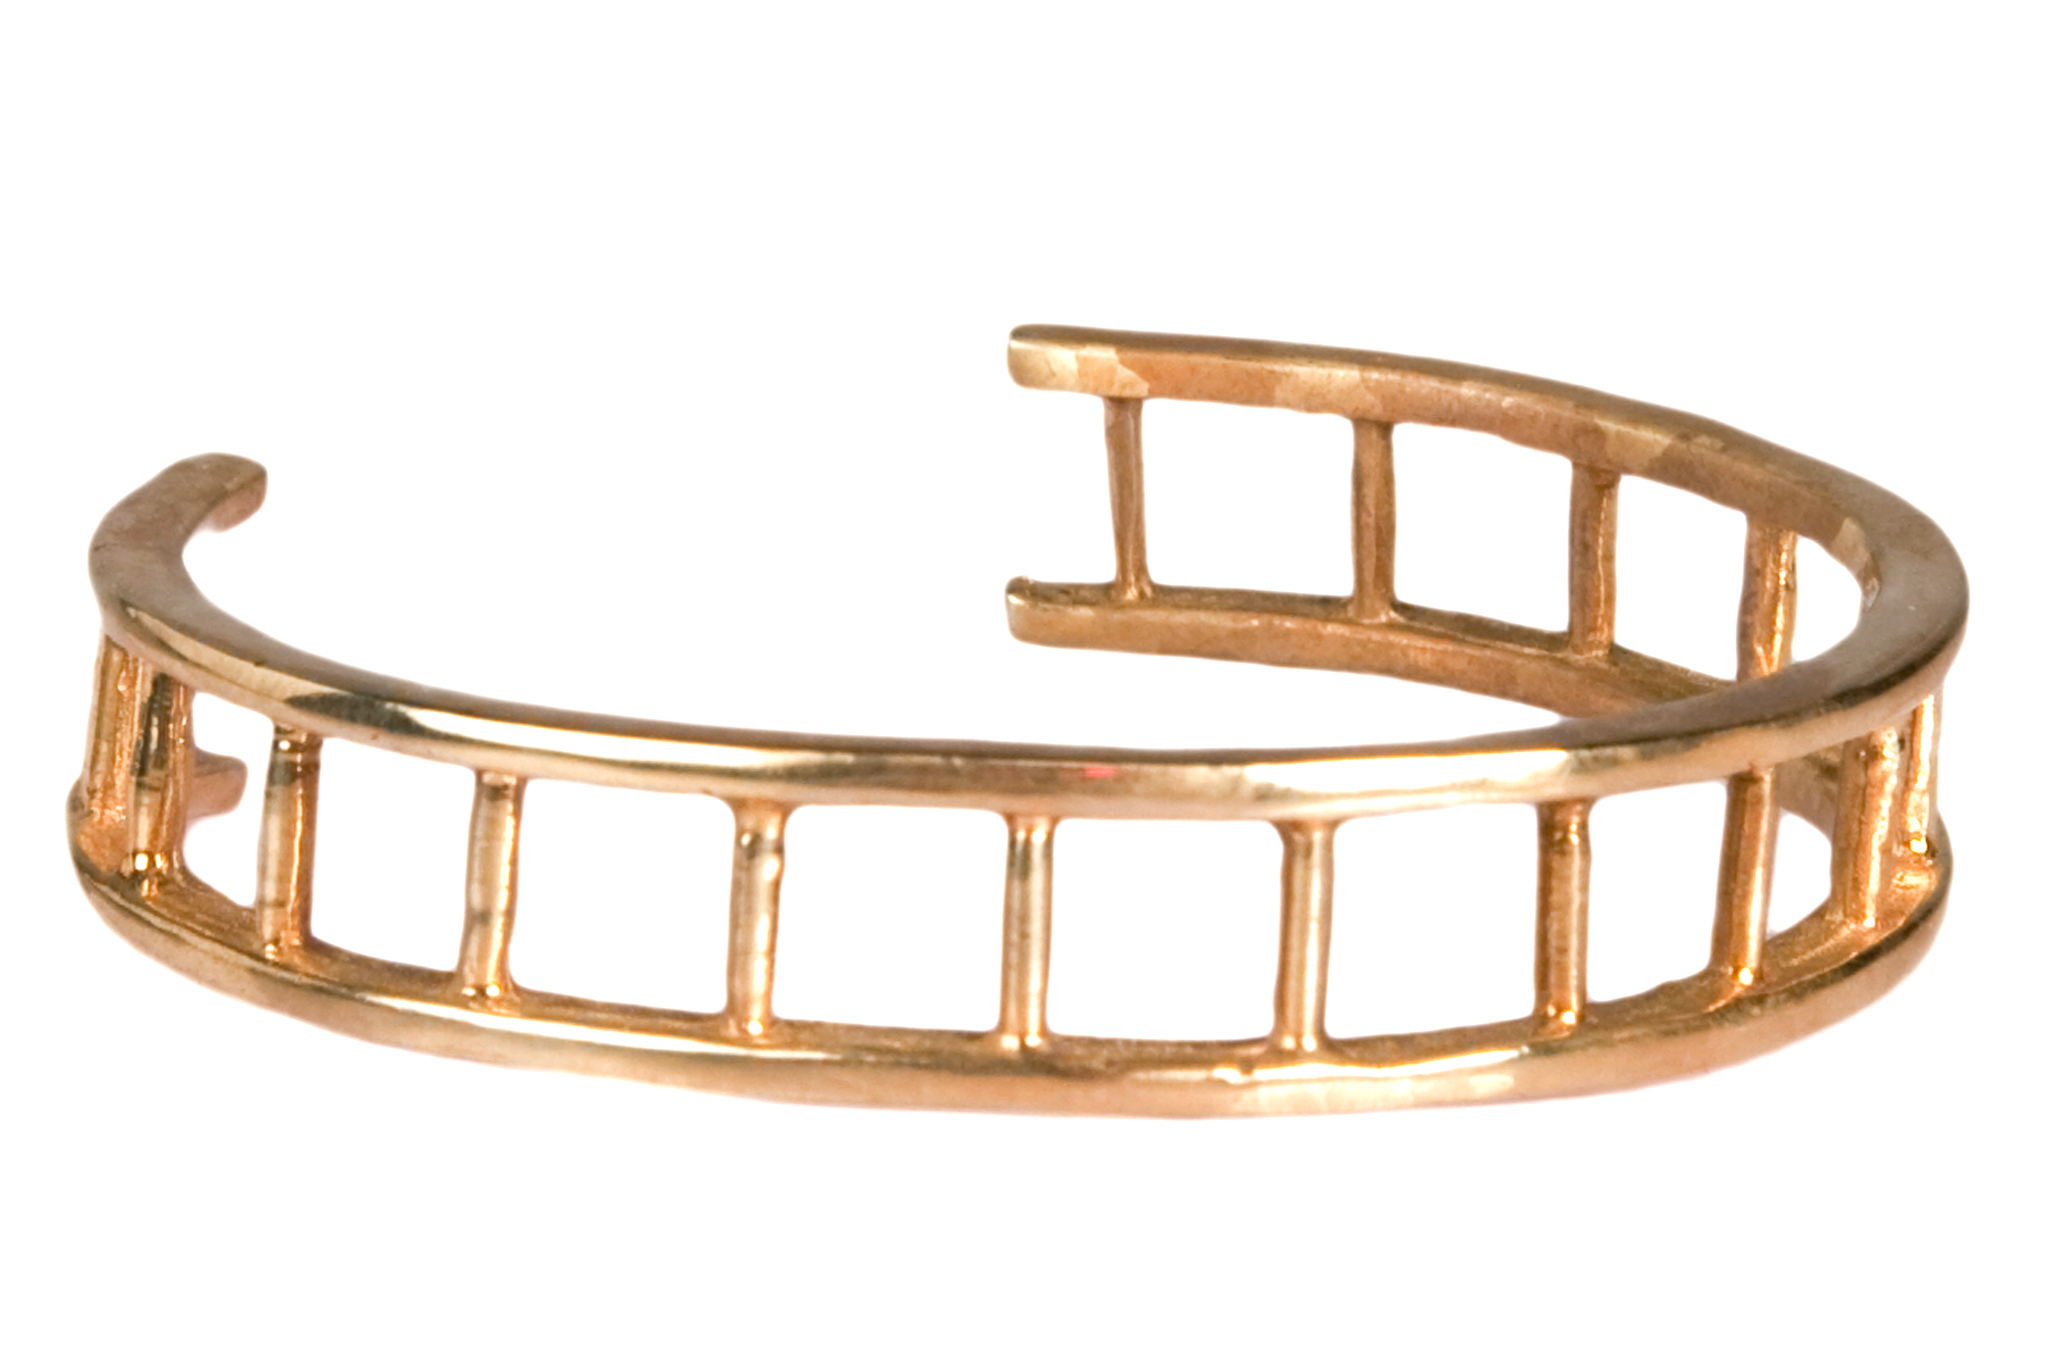 VeraMeat gold brass adjustable ladder bracelet, $160